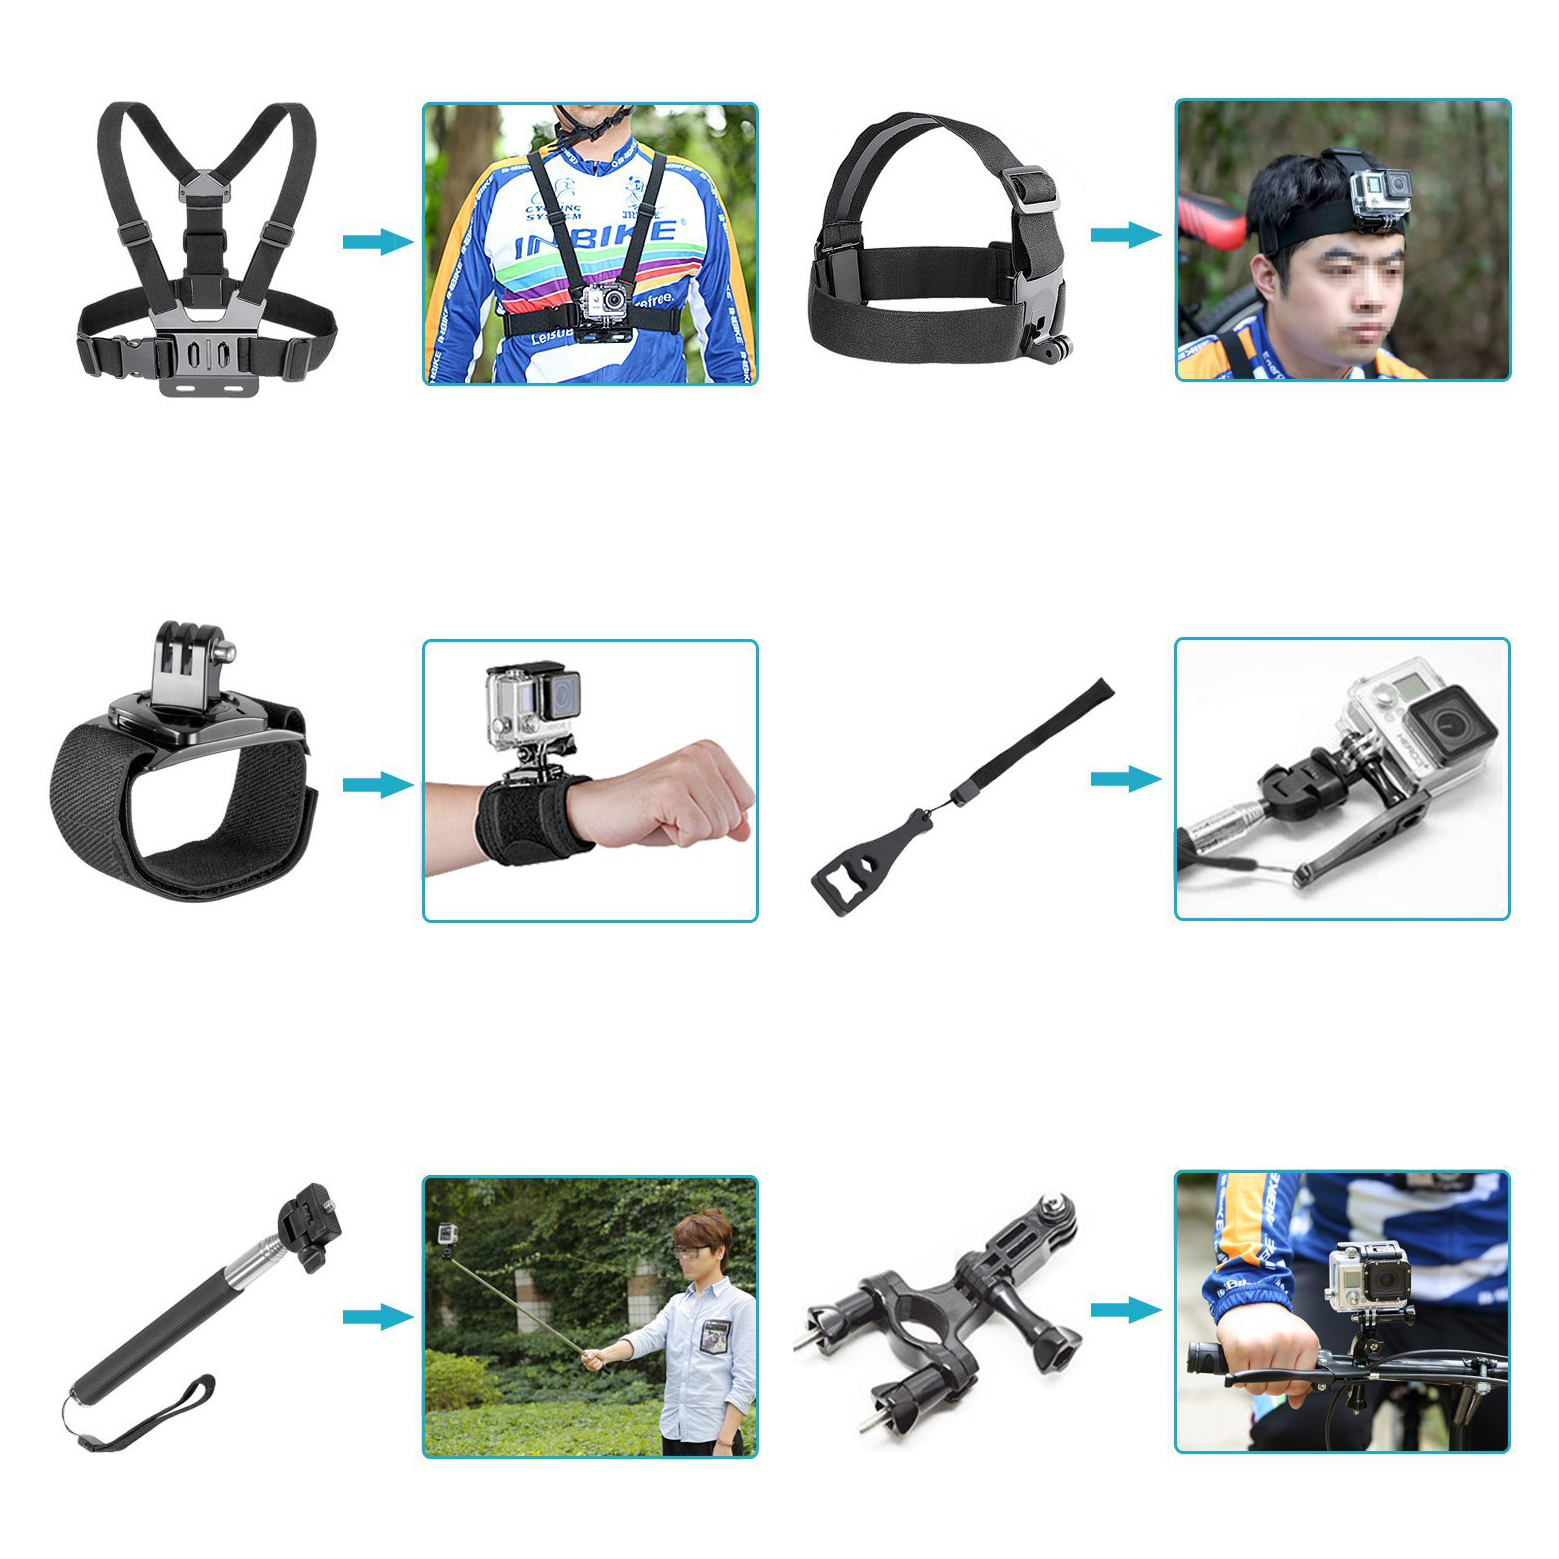 14-in-1 game External sports indispensable accessories for Gopro Hero4 Hero 1 2 3 3+ 4, SJ4000, and Sports Cameras of all others